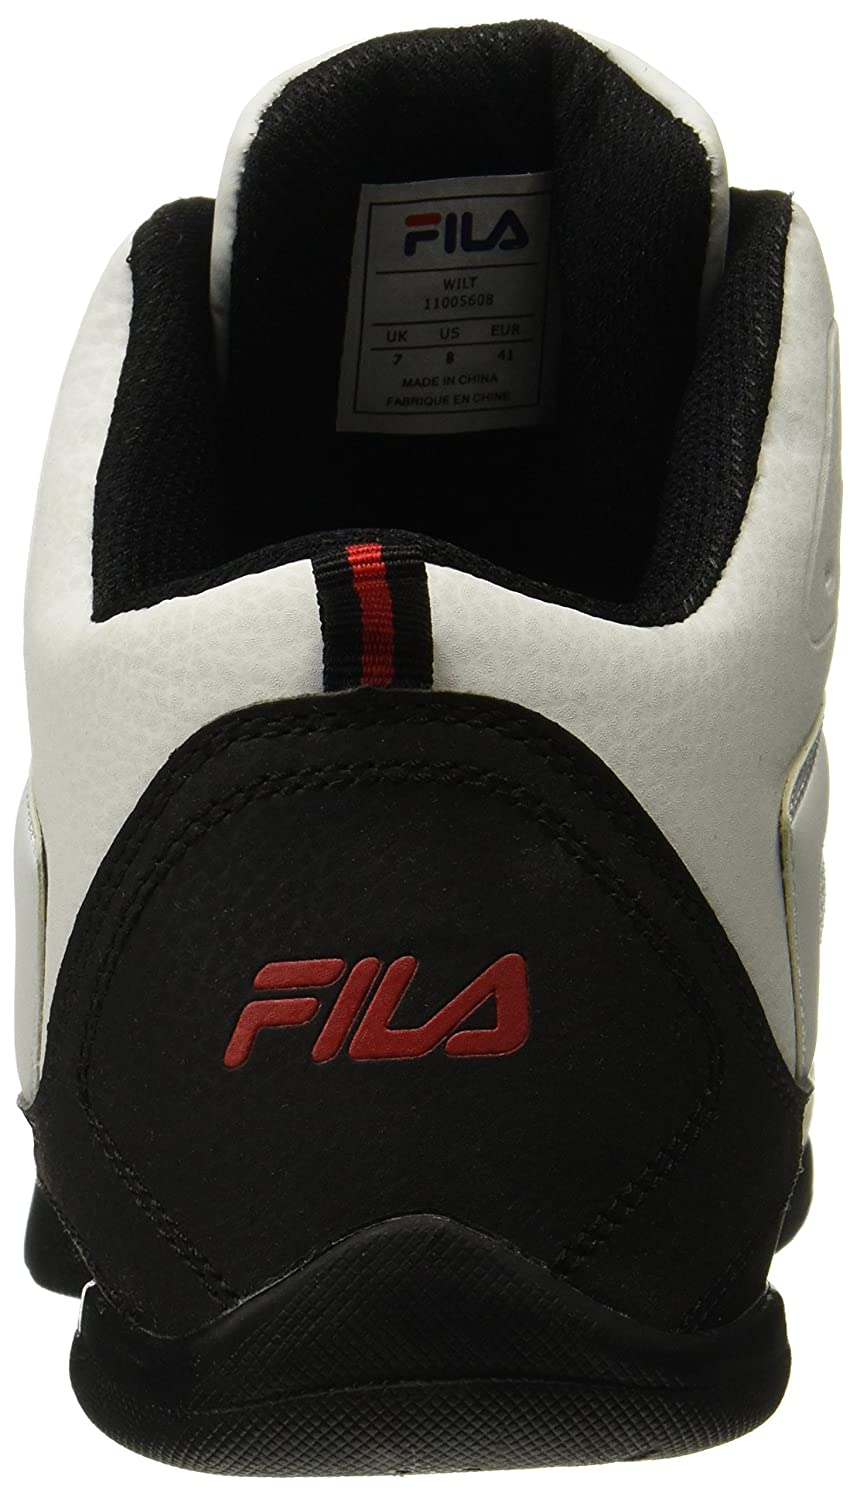 80a4047f87 Fila Men's Blitz Orange Football Boots - 8 UK/India (42 EU)(11005612): Buy  Online at Low Prices in India - Amazon.in